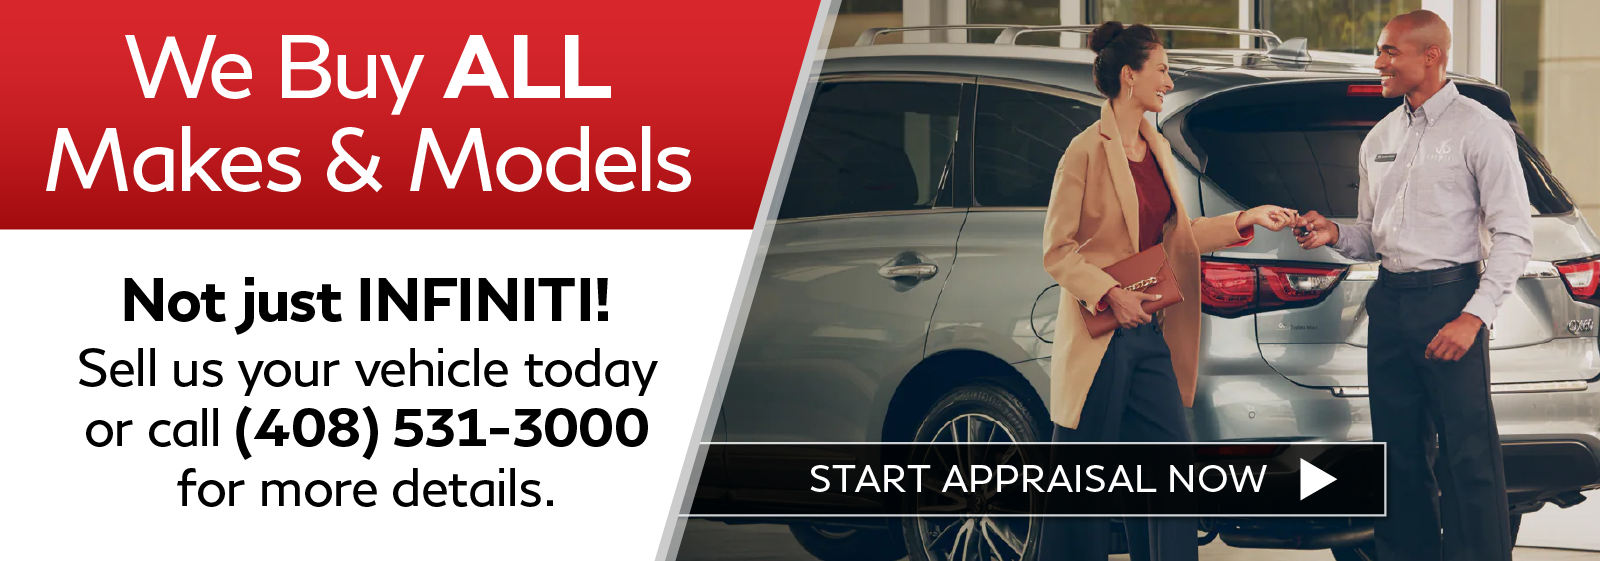 We Buy Cars. Click to start appraisal.